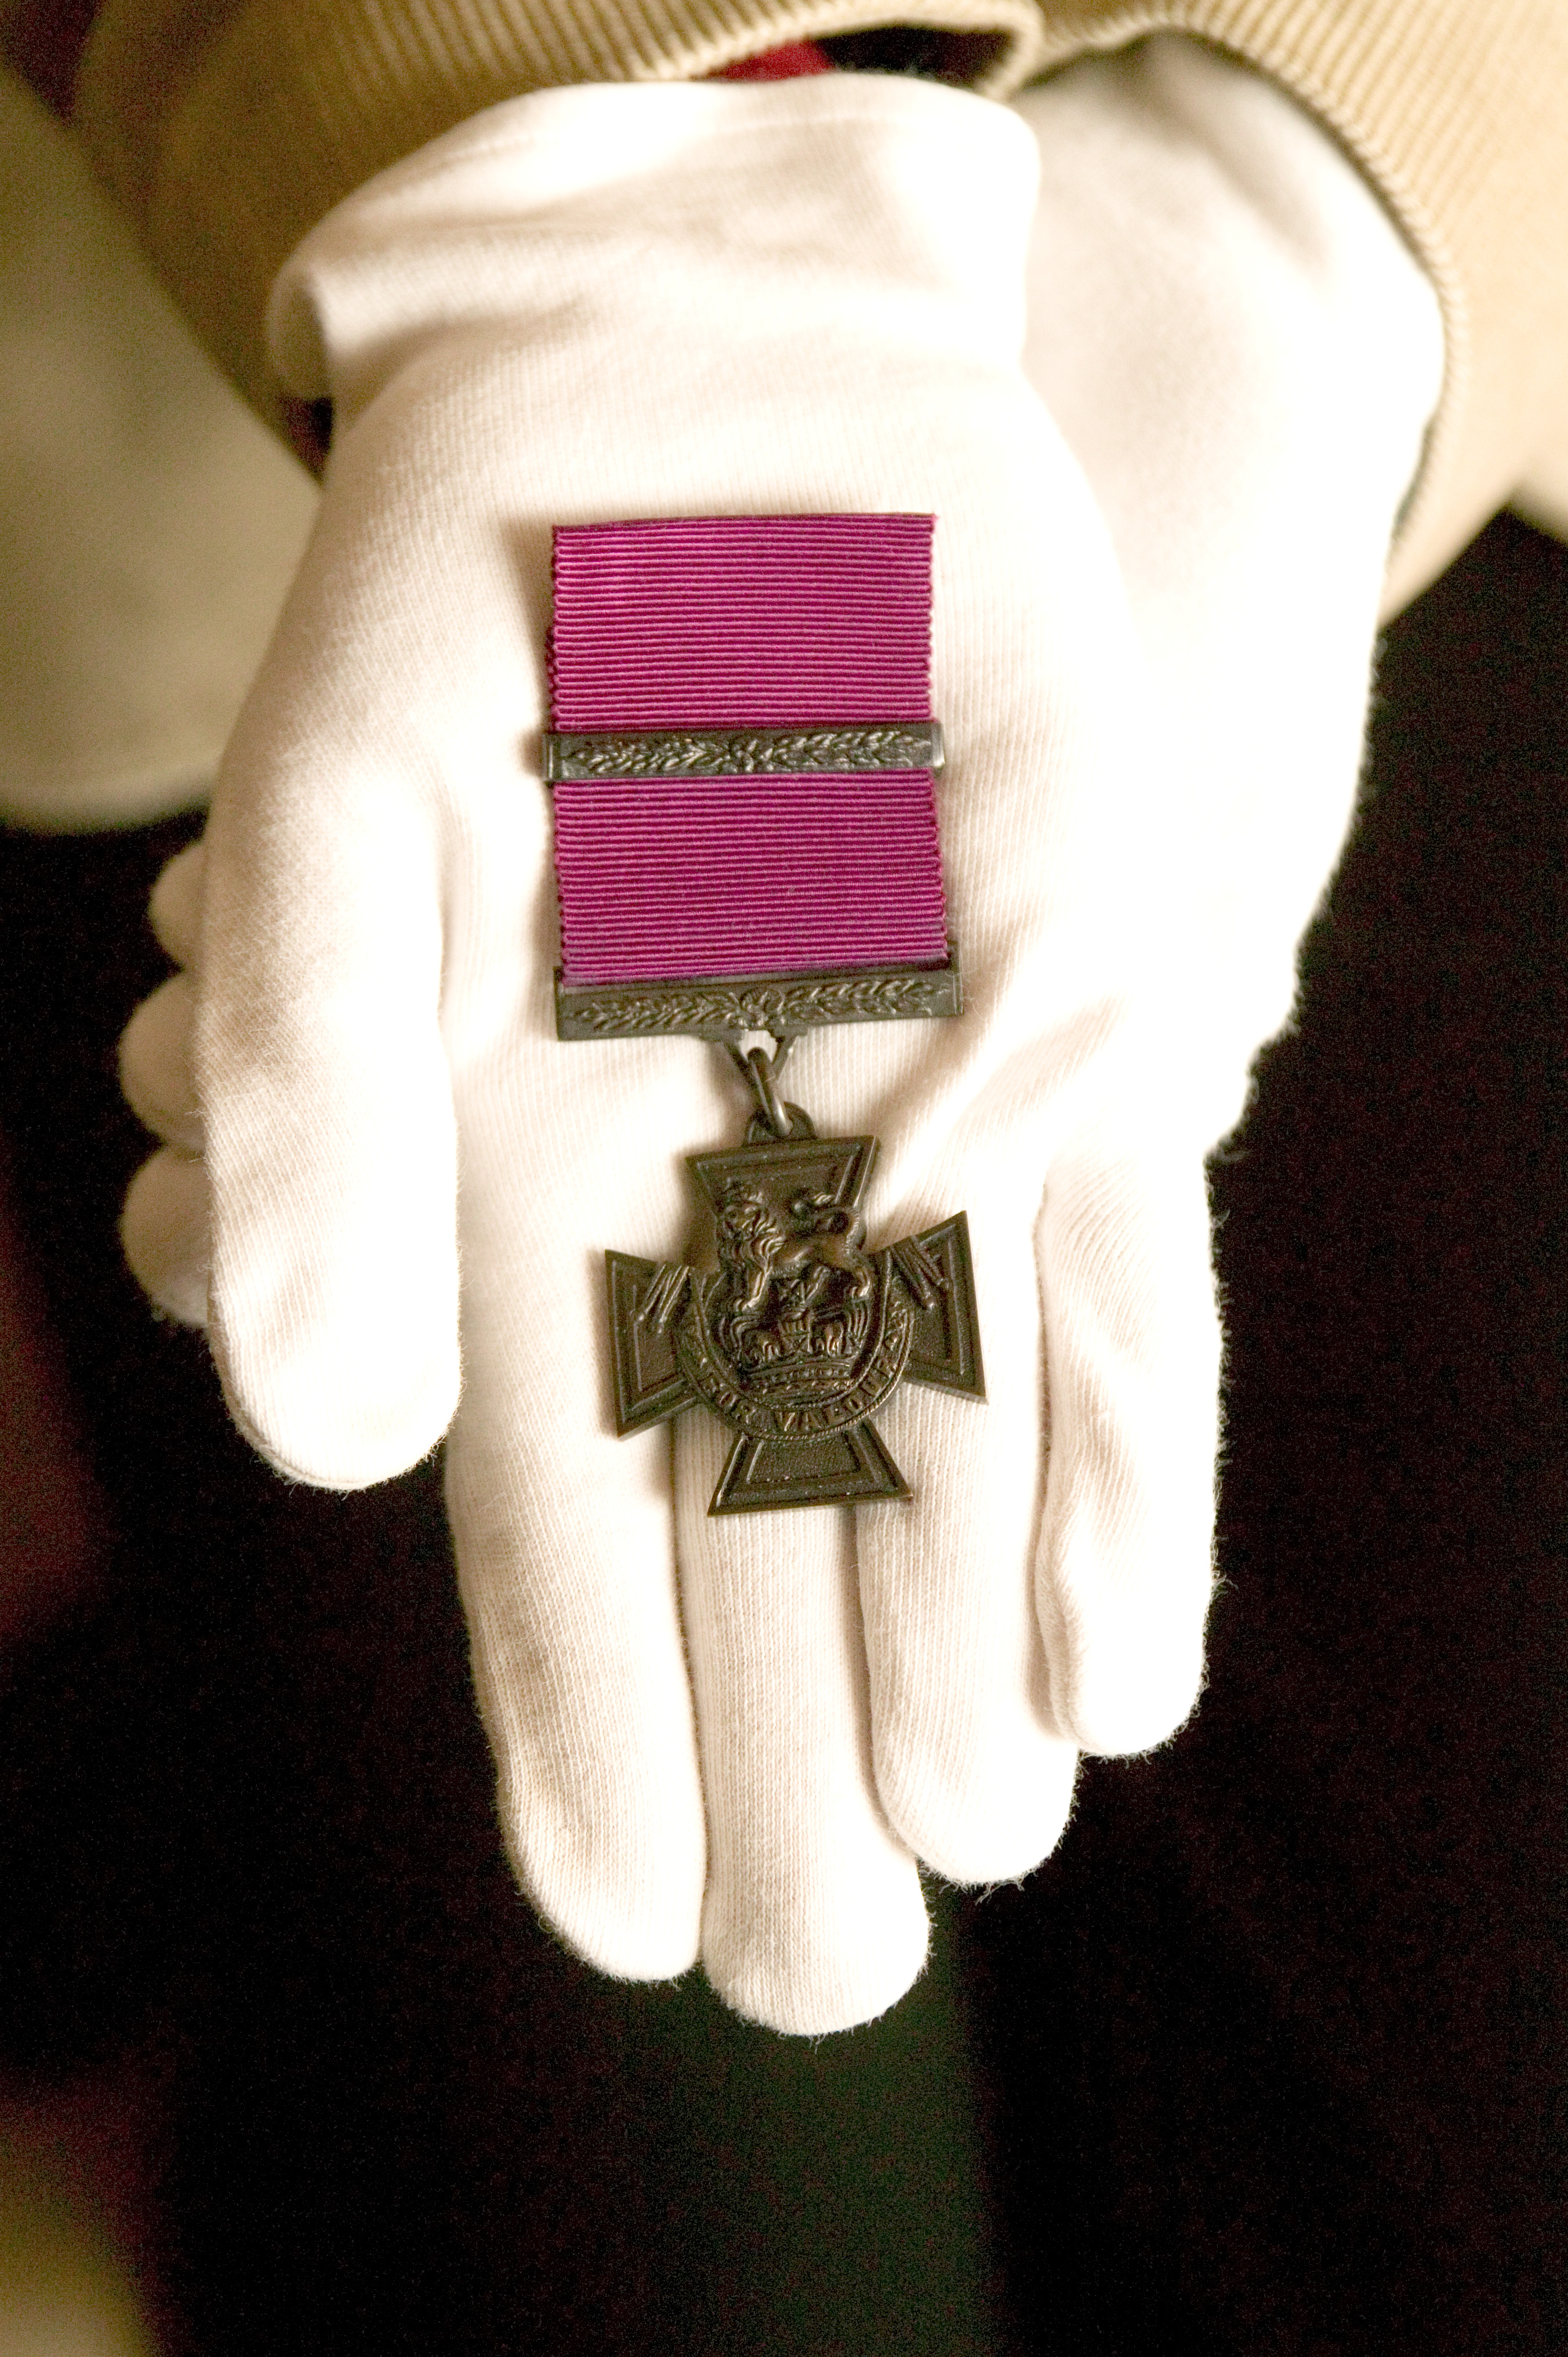 The actual specimen Victoria Cross medal that was approved by Queen Victoria in the nineteenth century.   Instituted by Queen Victoria to cover all actions since the outbreak of the Crimean War in 1854, the Victoria Cross has been awarded 1356 times and 3 bars have been awarded.   The most recent recipient of the VC is Corporal Bryan Budd, of the 3rd Battalion The Parachute Regiment, who was posthumously awarded the VC for acts of 'inspirational leadership and the greatest valour' in Southern Afghanistan in 2006.  In 2004 Private Johnson Beharry from 1st Battalion the Princess of Wales's Royal Regiment was awarded the honour for two separate acts of outstanding gallantry of the highest order whilst based in Al Amarah, Iraq.  The VC is made from the bronze of Russian guns captured at Sebastopol, though modern research suggests that Chinese guns may have been used at various times.